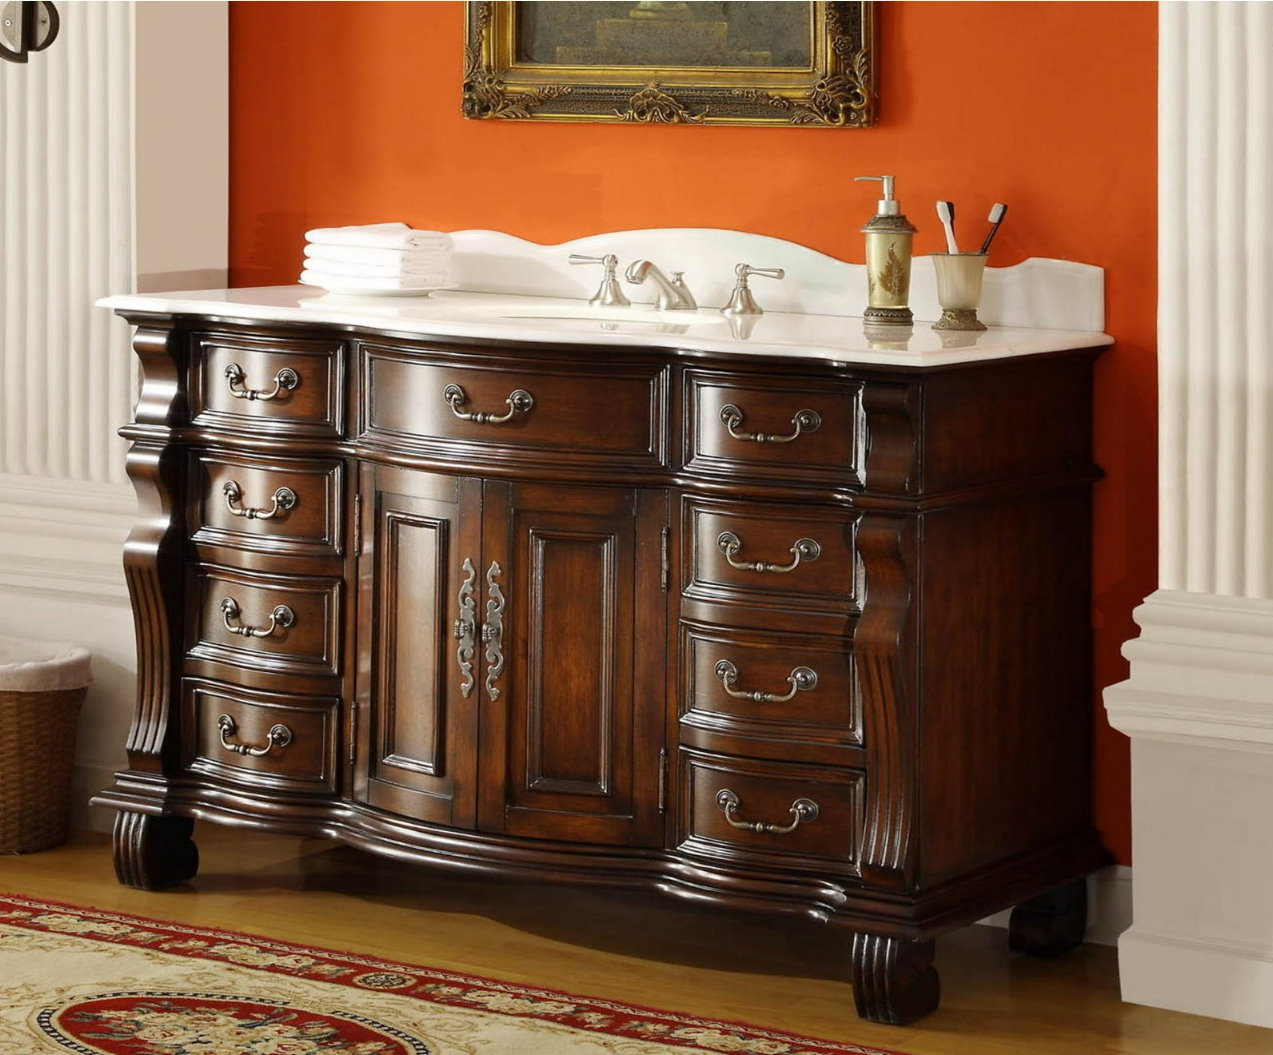 60 Inch Single Sink Bathroom Vanity 8 Drawers Medium Brown Color Wx22 Dx36 H Cgd4437w60